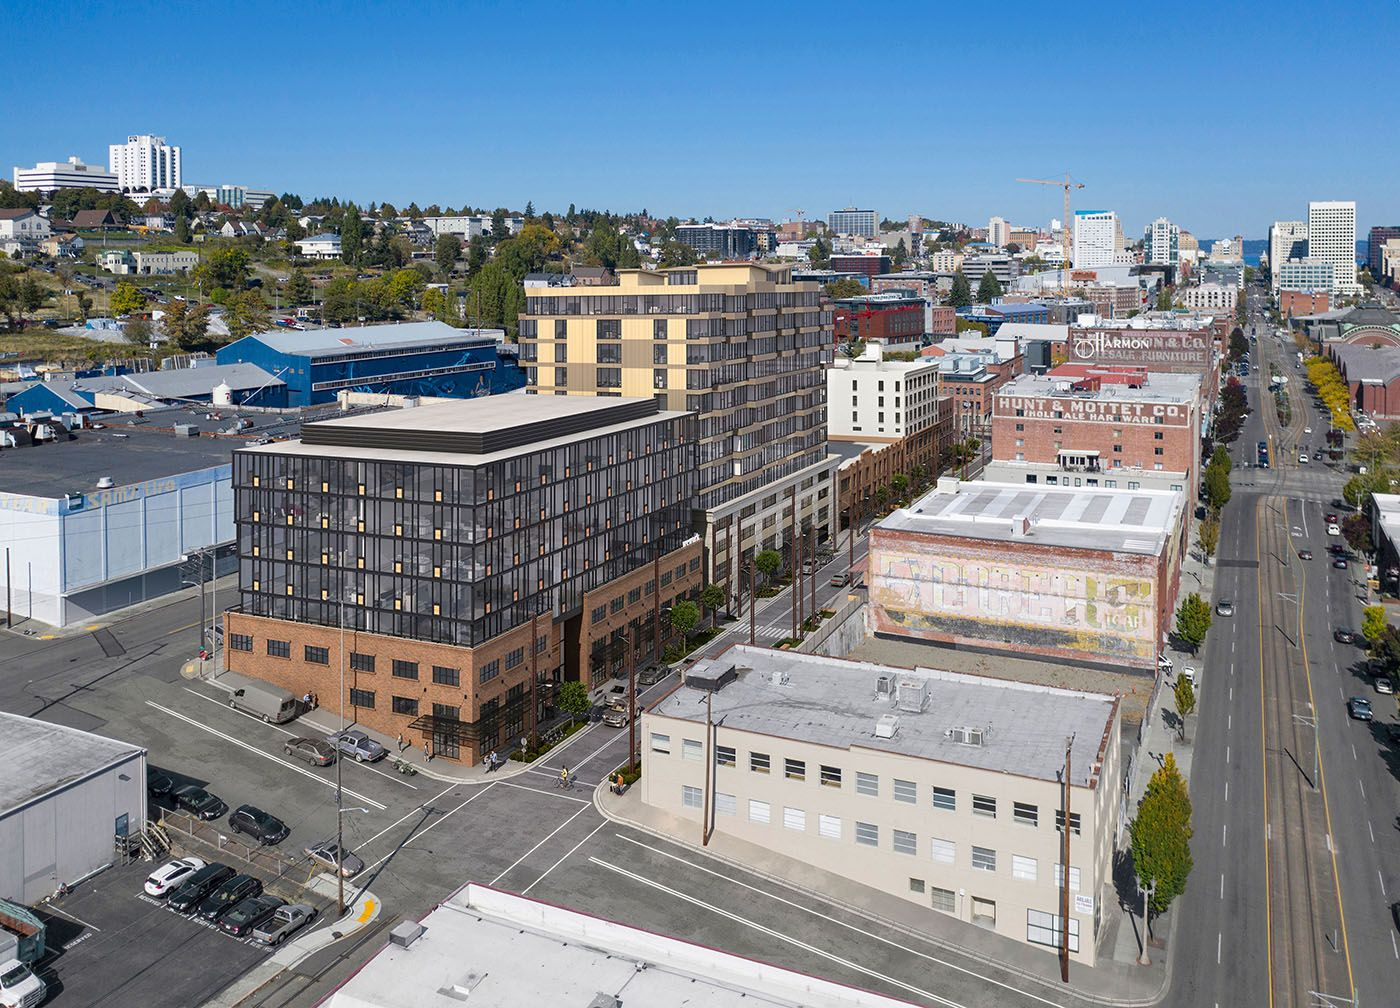 New Images Show The Designs For 200m Brewery Blocks In Tacoma Brewery Blocks Will Have A Mix Of Housing Offices And Brewery Japanese Beer Effects Of Alcohol